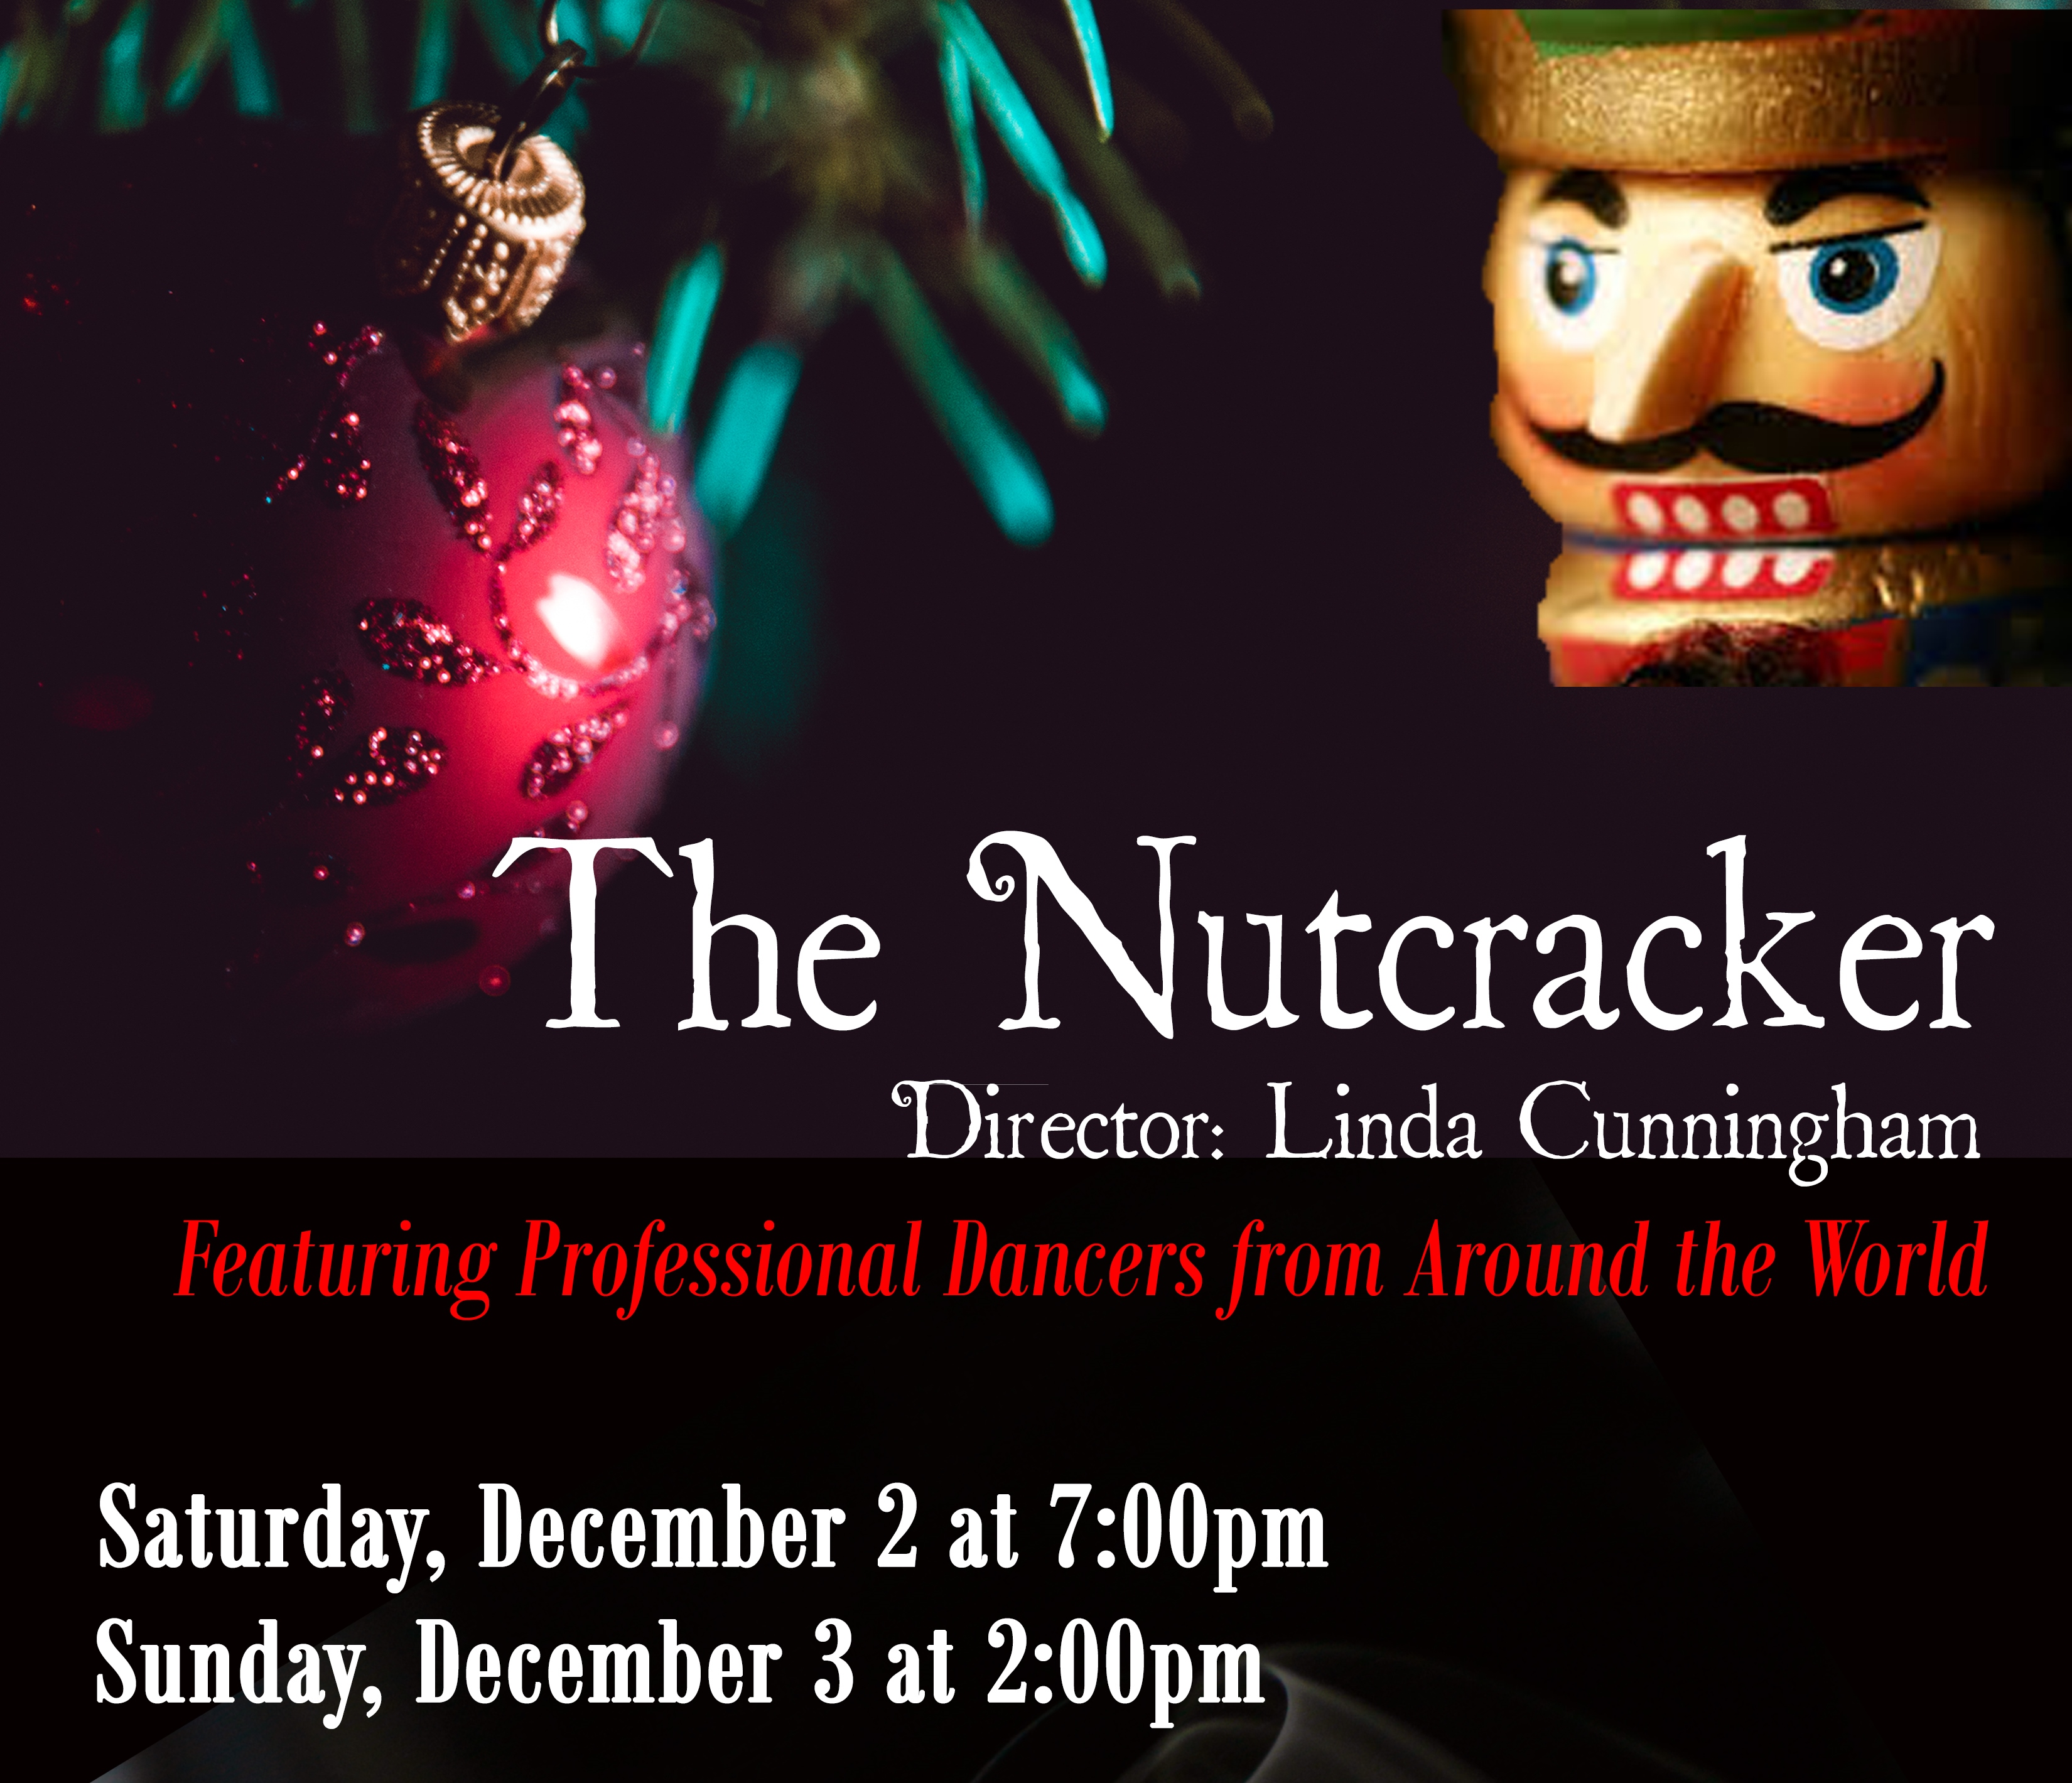 Nutcracker Poster Top Cropped.jpg